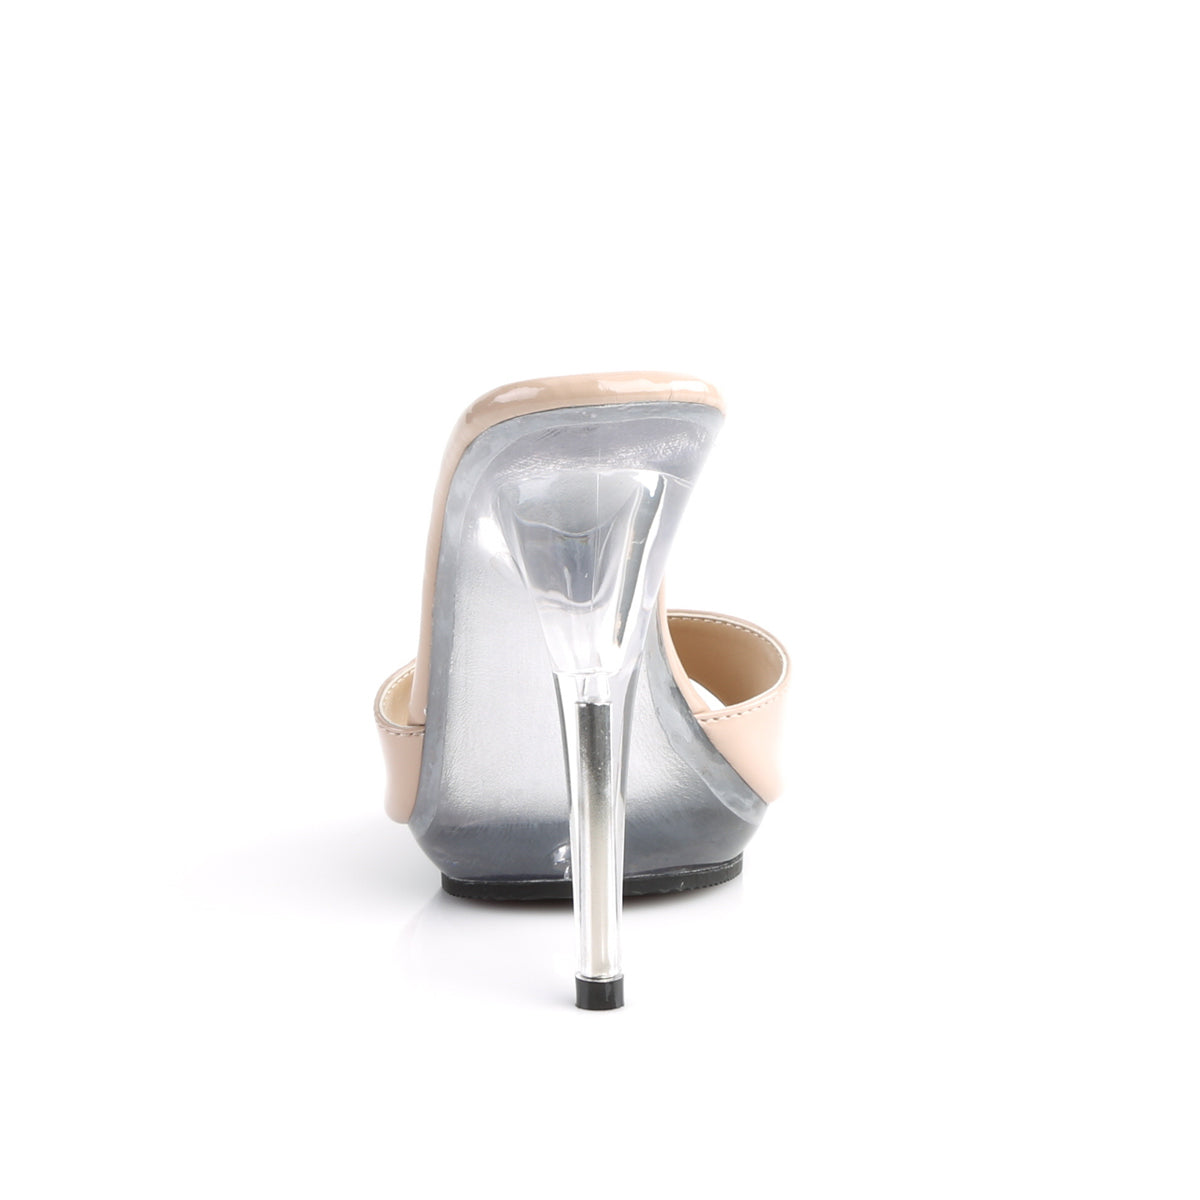 46599788ed3 POISE-501 Fabulicious Sexy Shoes 5 Inch Heel Slip On Slide Shoes ...